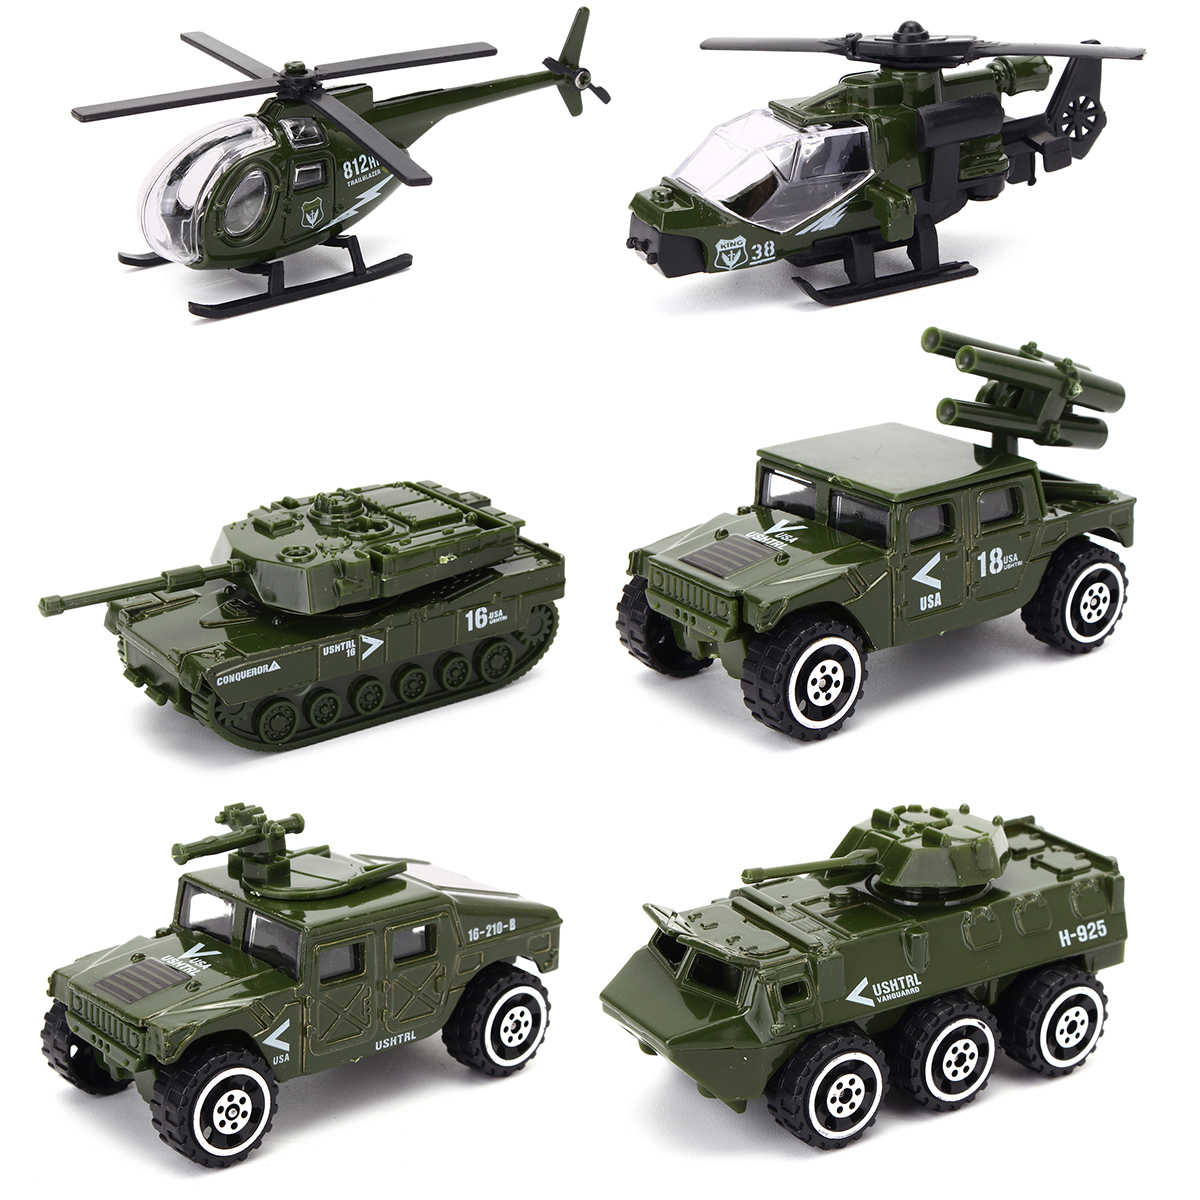 Meigar 6Pcs Set 1:87 Car Model Toys Diecast Vehicles Truck Tank Helicopter Kids Gifts